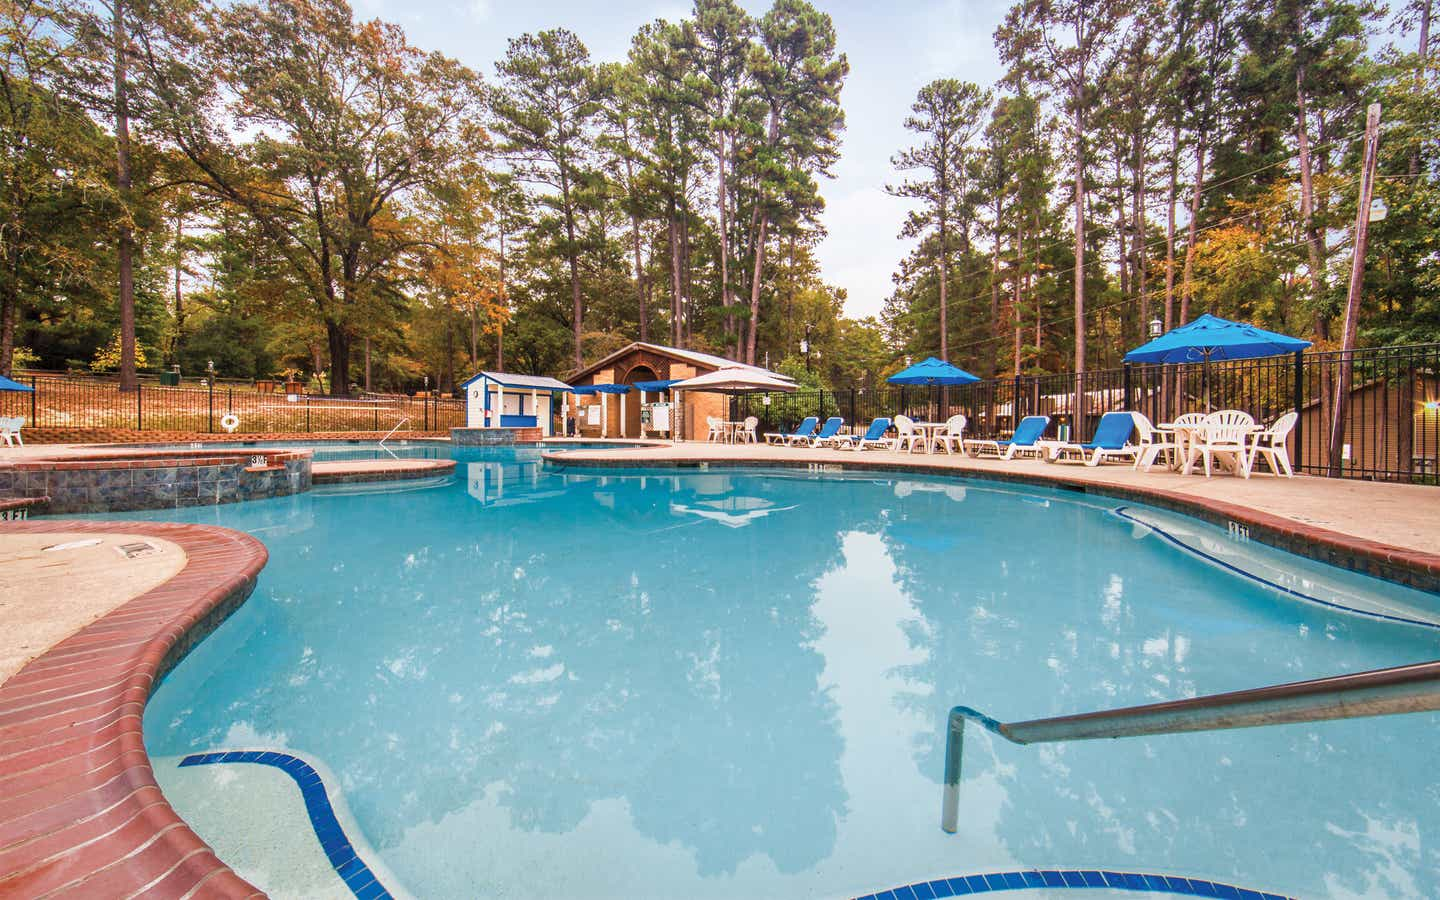 Outdoor pool with sun umbrellas at Holly Lake Resort in Texas.